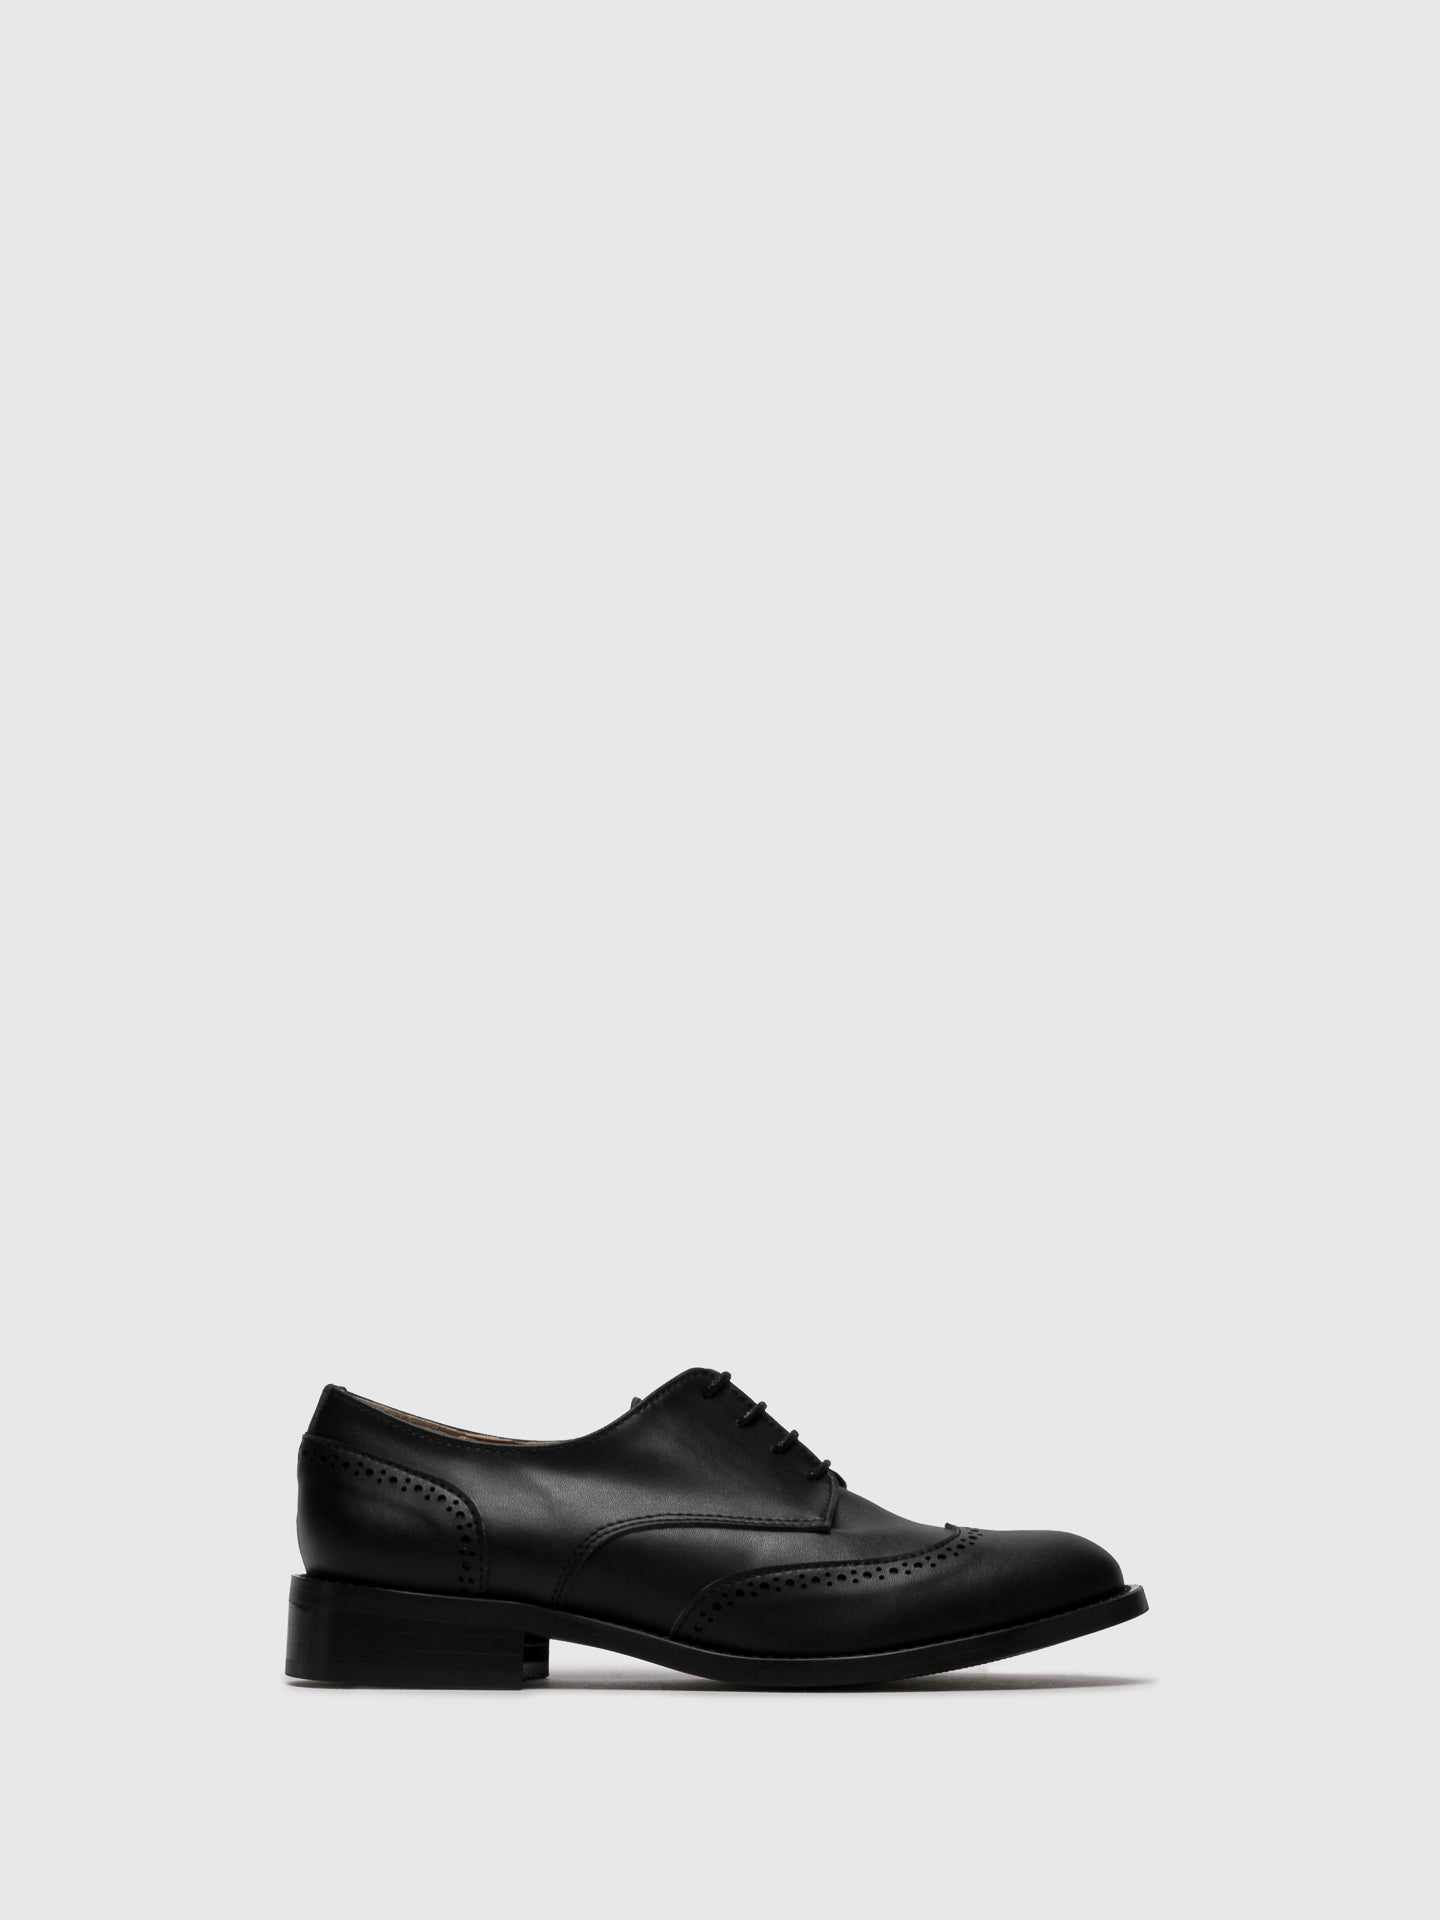 NAE Vegan Shoes Black Oxford